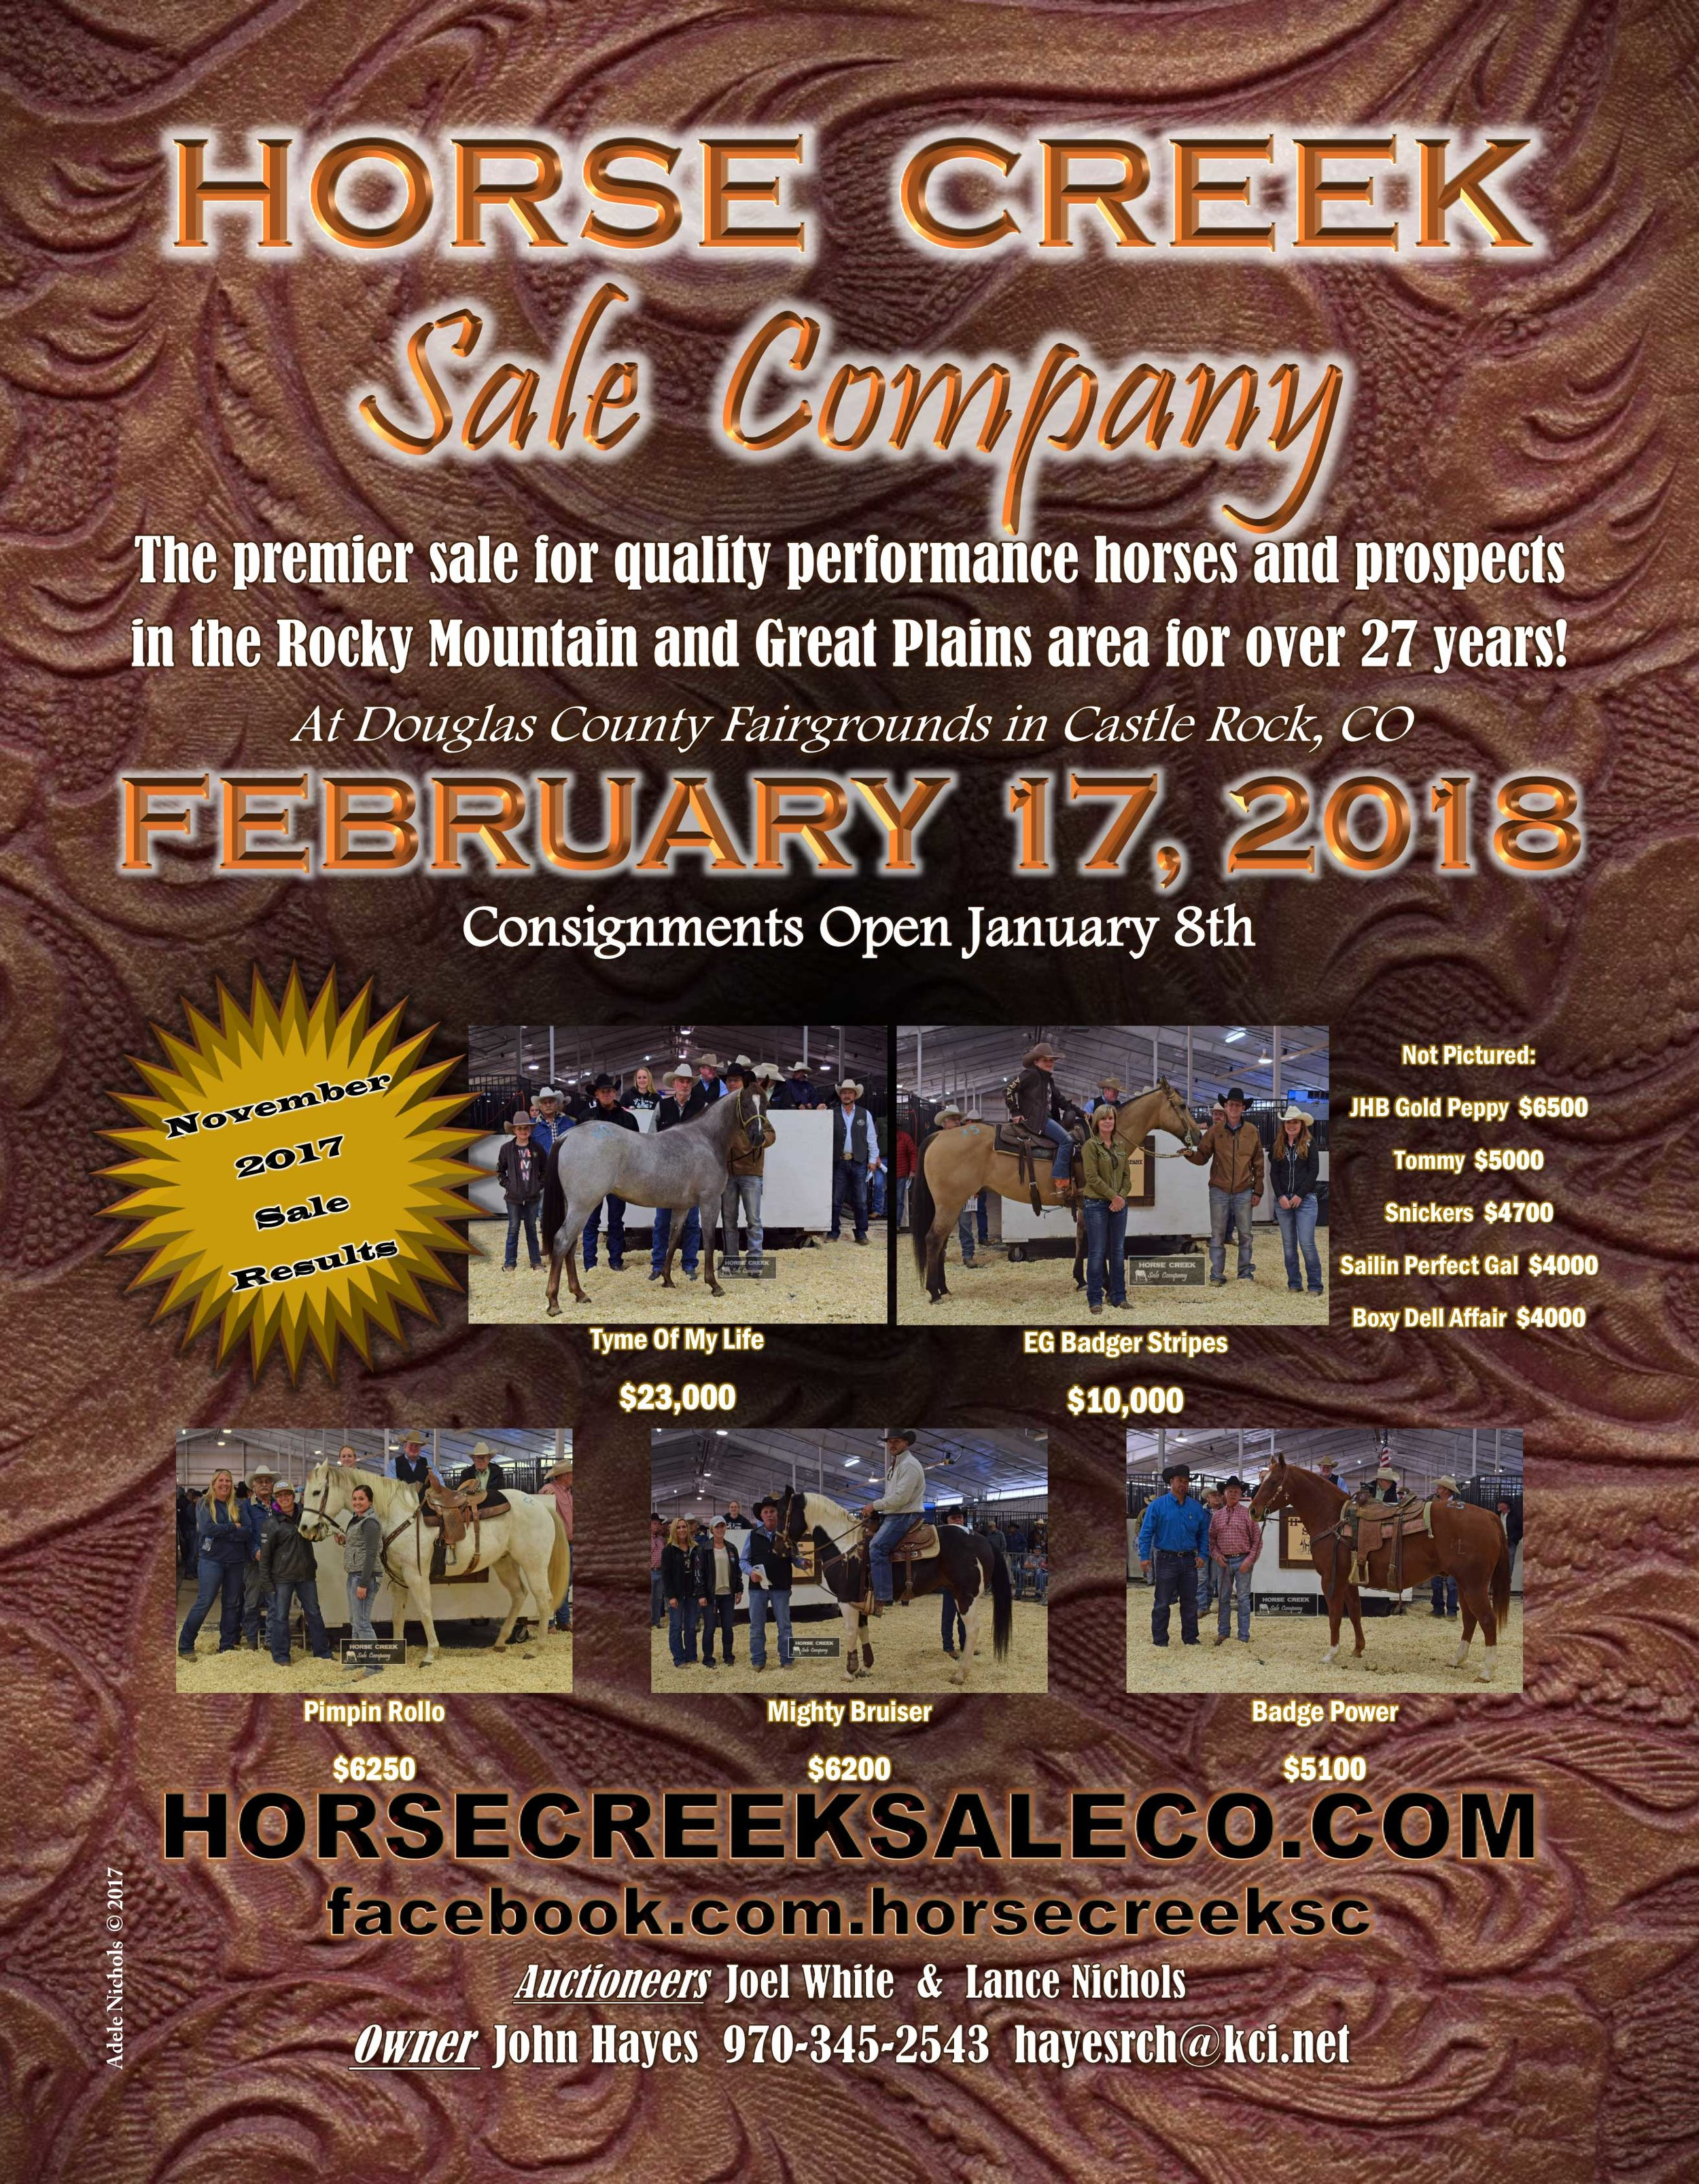 CLICK FLYER TO VIEW HORSE CREEK WEBSITE